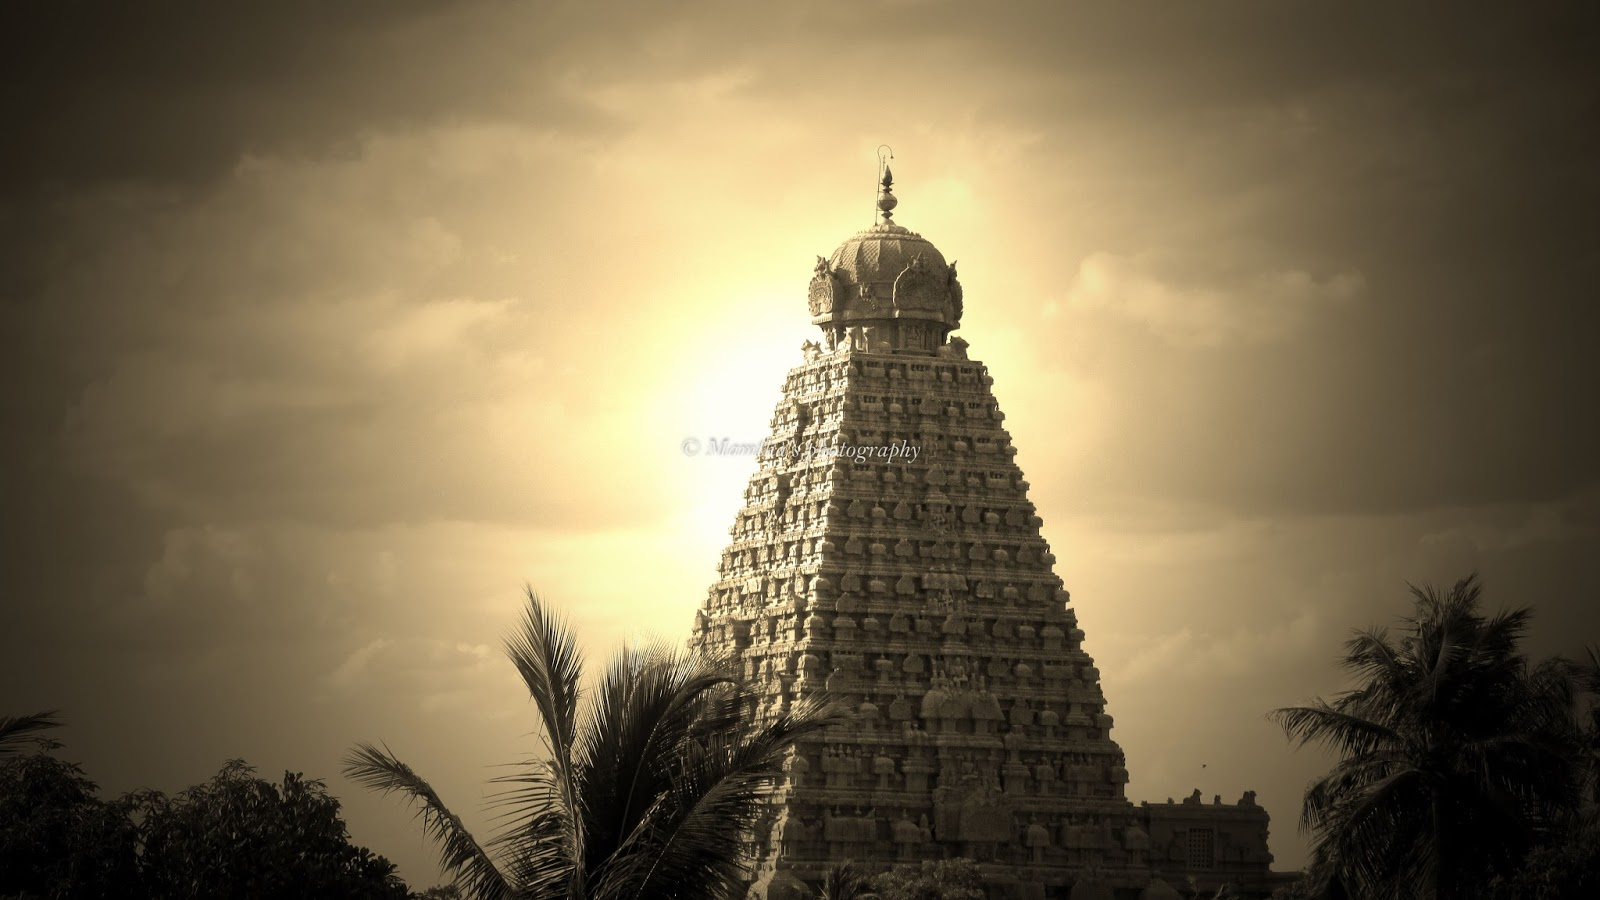 Mamthas Photography Thanjai Temple Tower